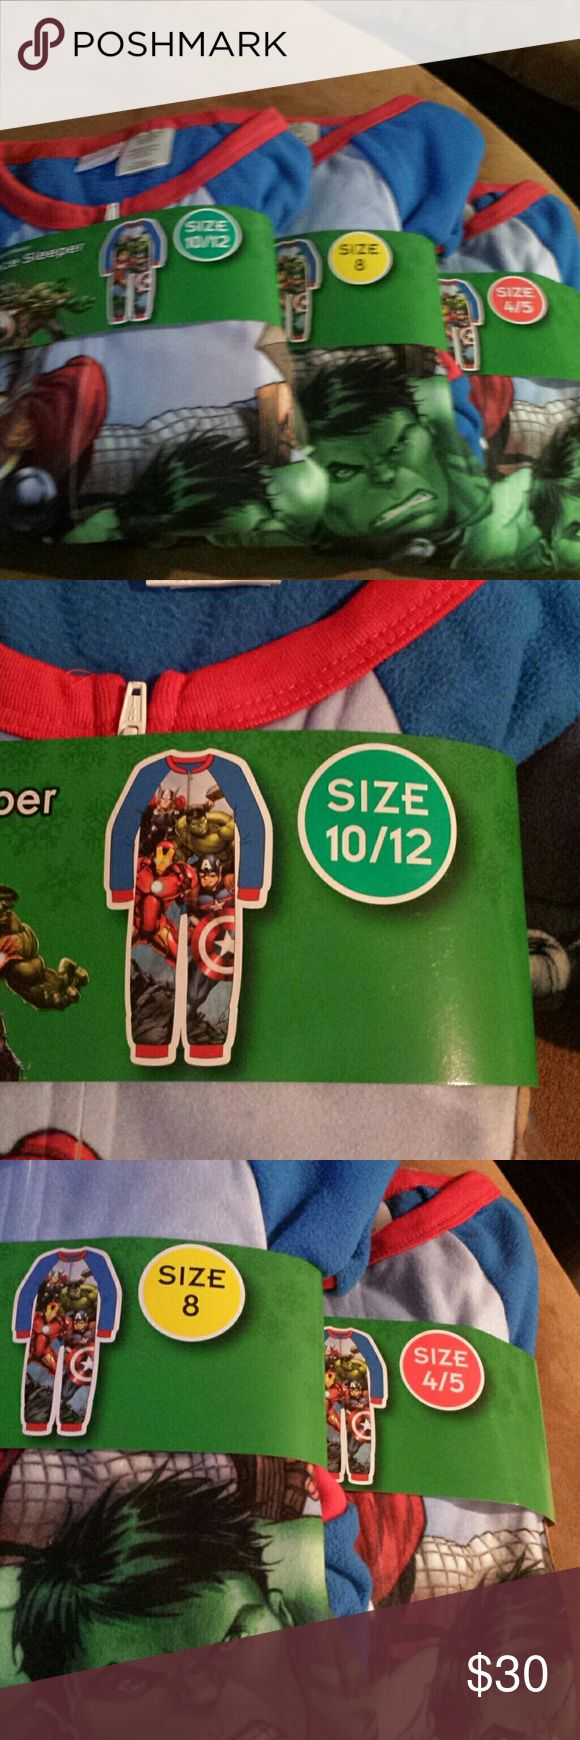 MARVEL Avengers Boys 1pc Pajama (4/5, 8, 10/12) 3 sizes available. New with tag. 1pc pajama for boys. Flannel marvel aleepwear. Very comfy pajamas. $20 each avengers One Pieces Bodysuits